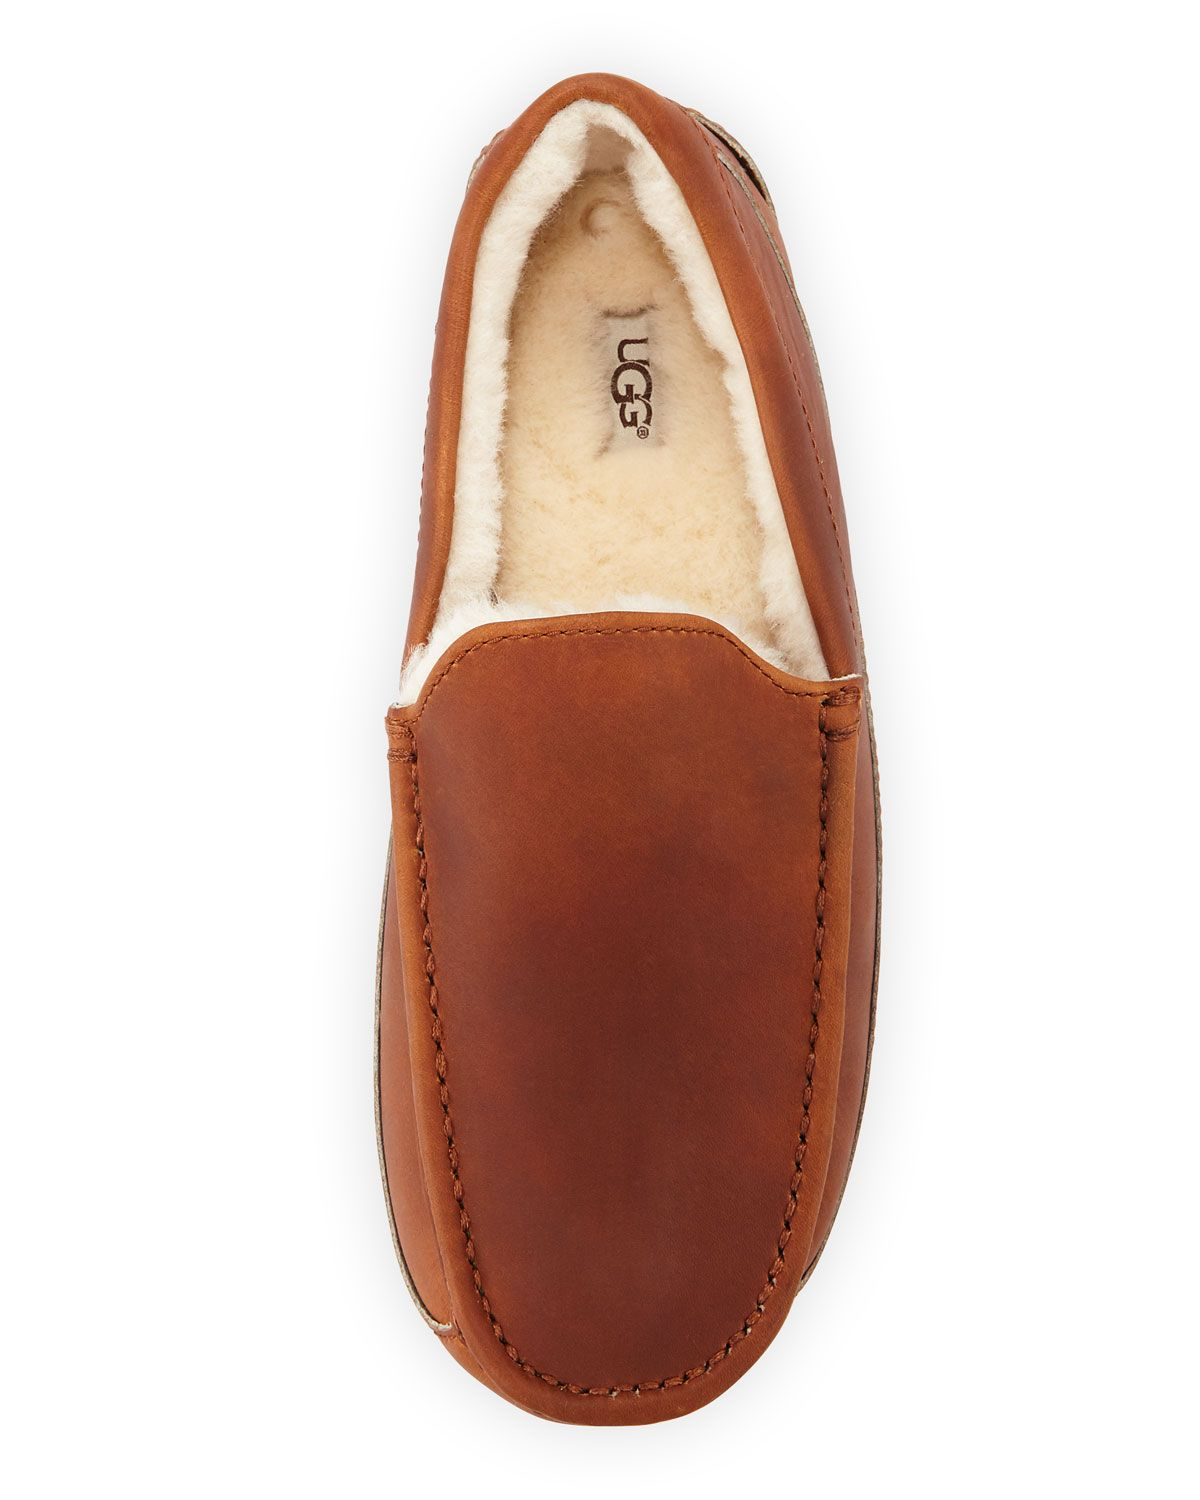 ef52189c1fa UGG Men's Ascot Pinnacle Horween Leather Slippers   Products ...